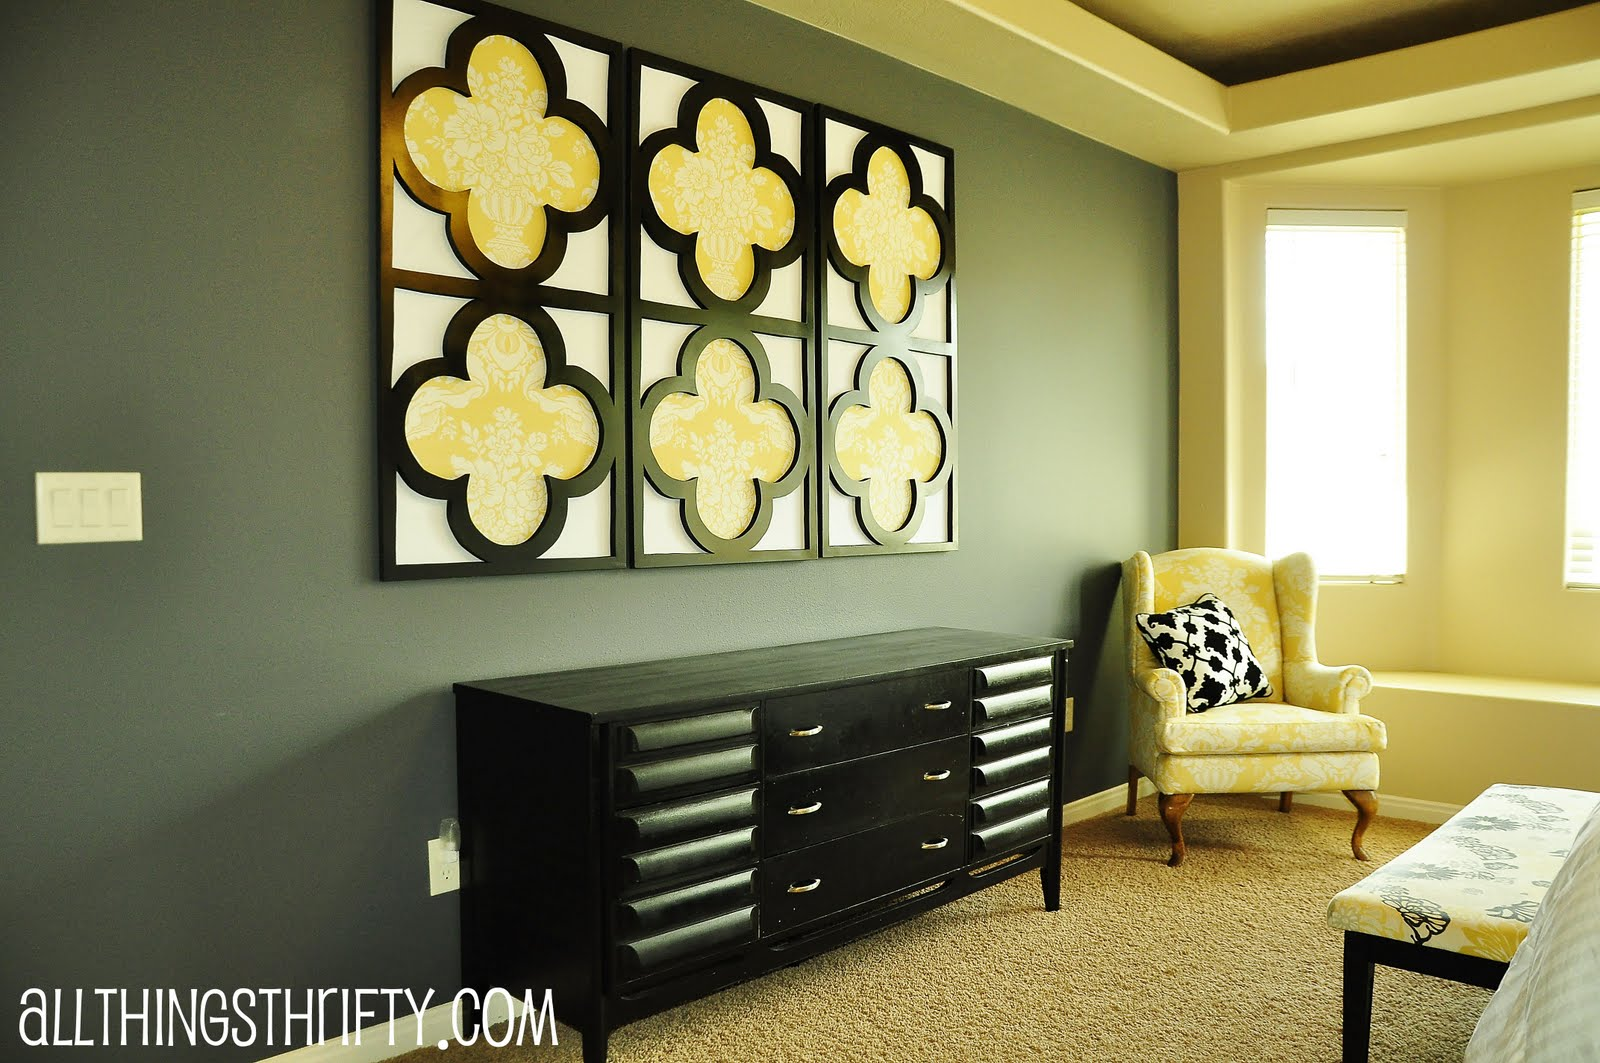 tutorial quatrefoil diy decorative wall art - Decorative Wall Art